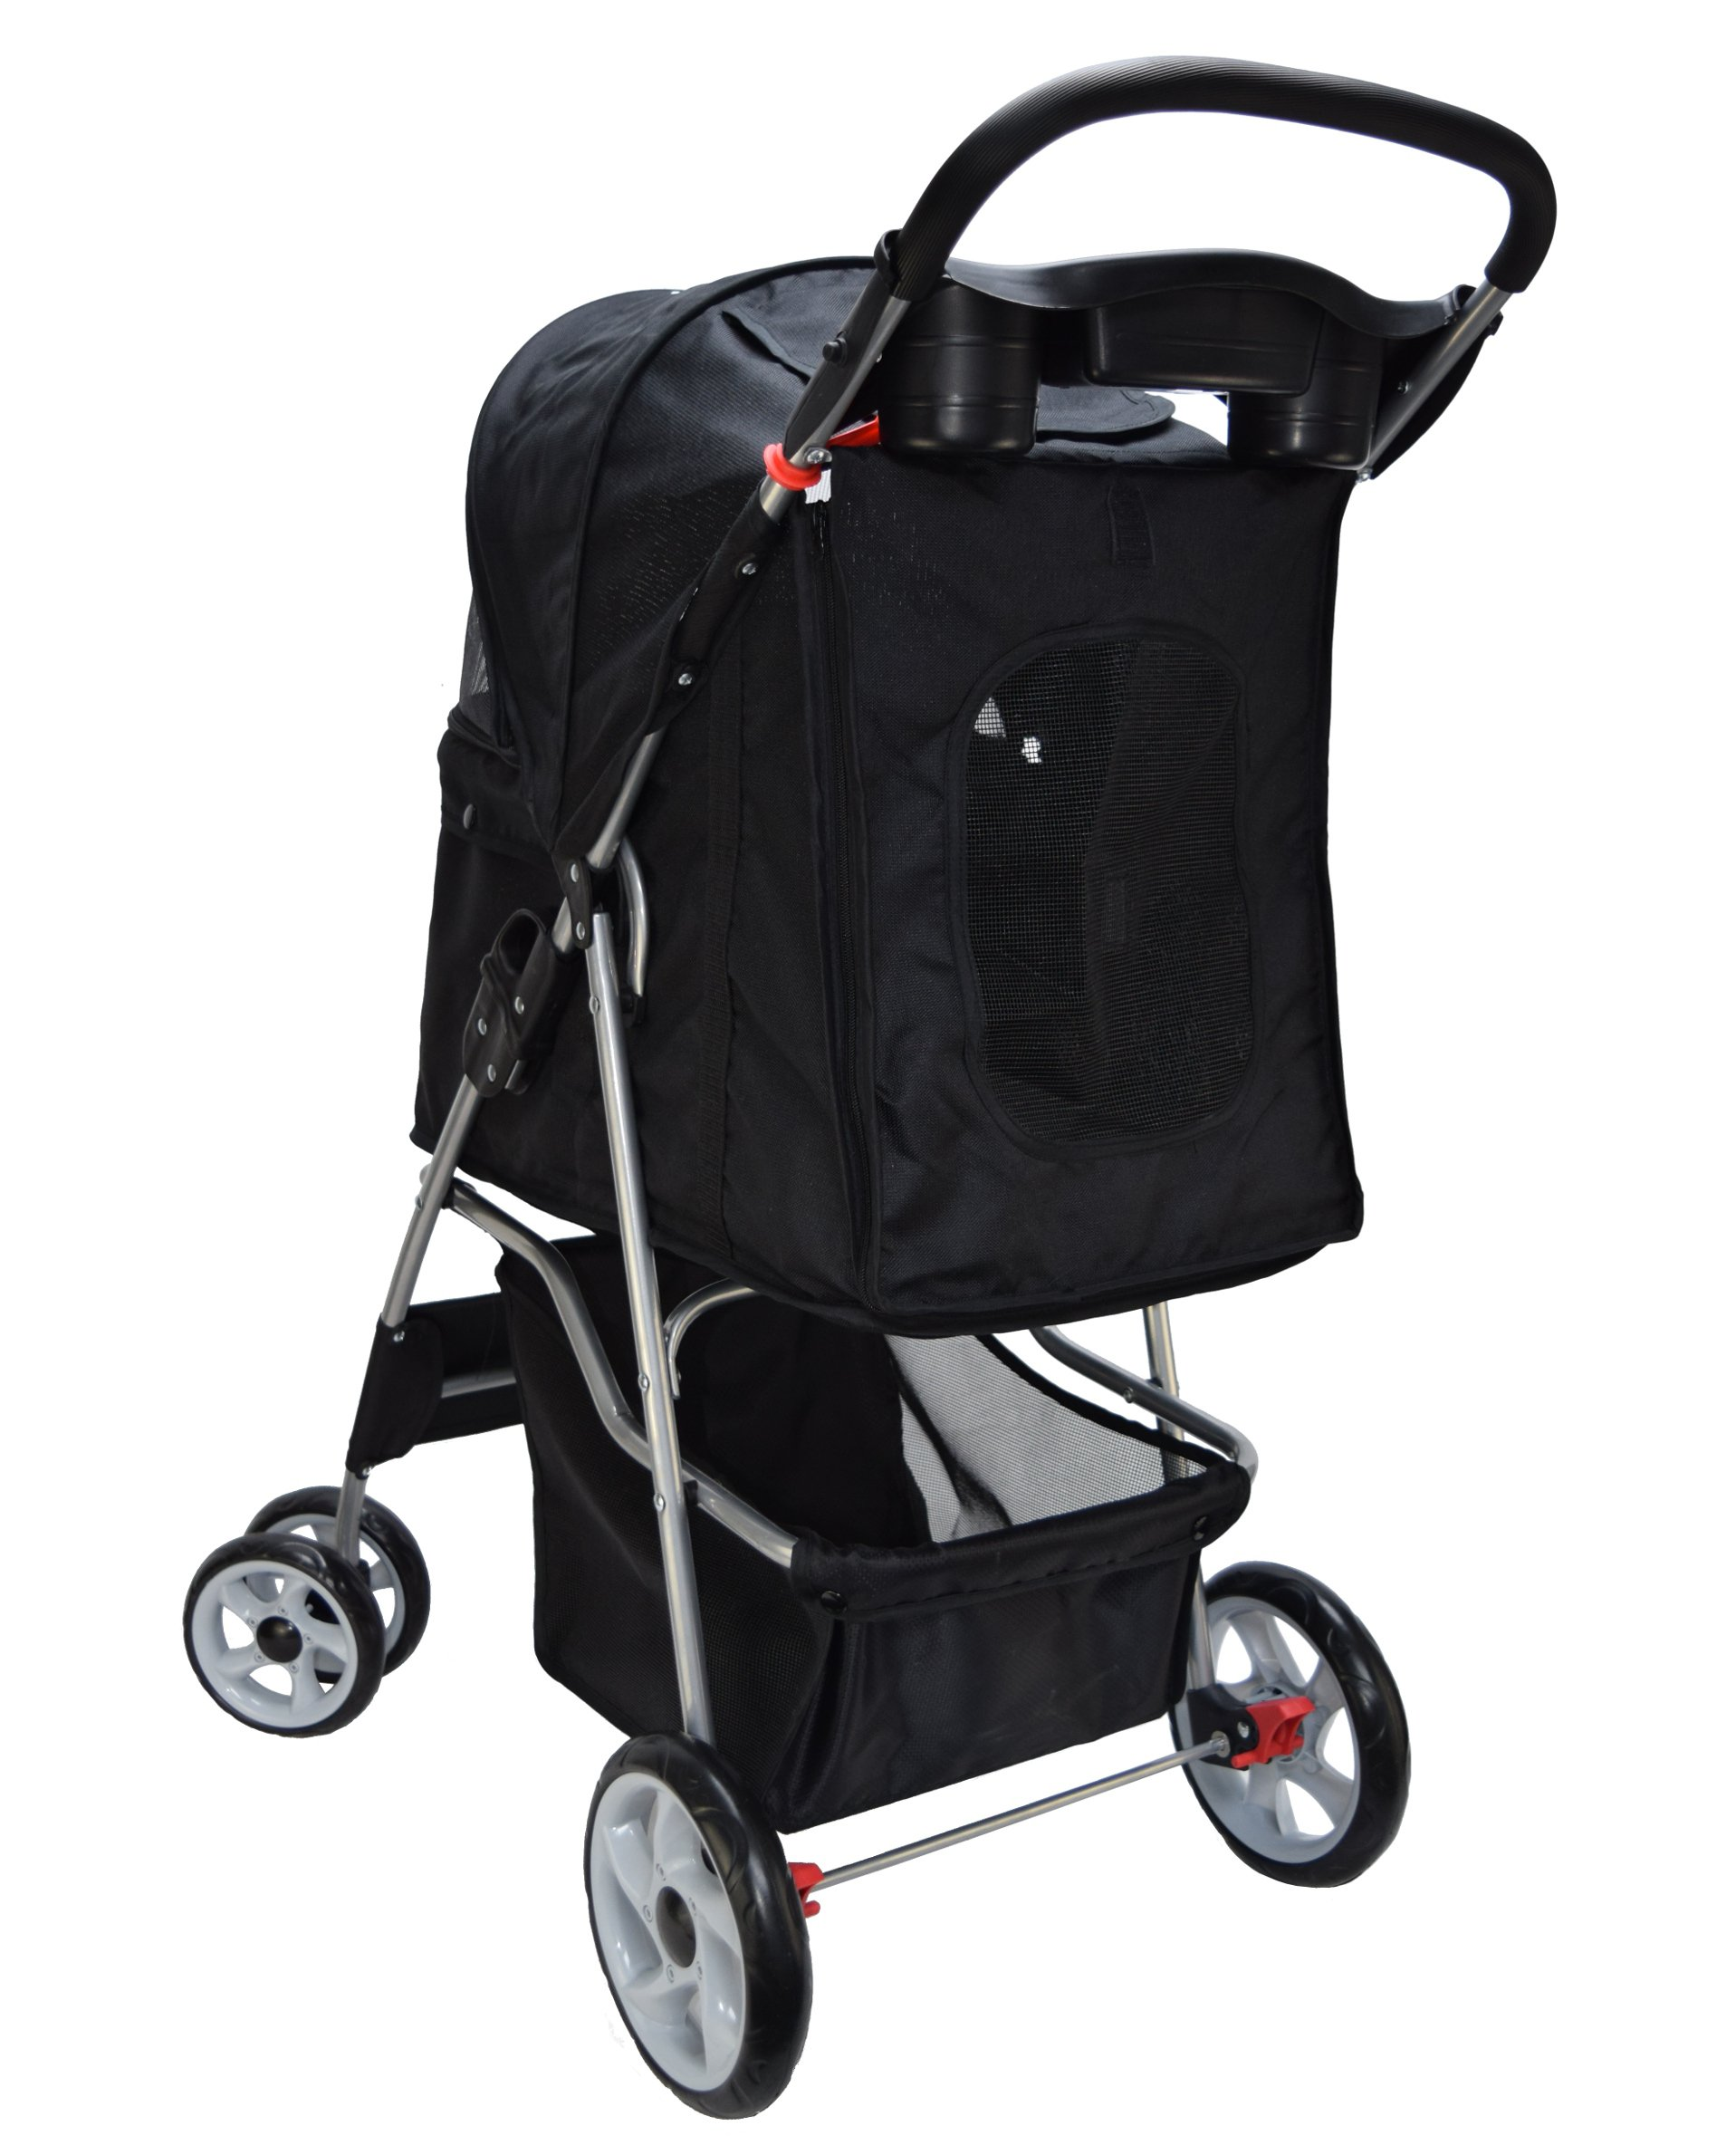 VIVO Four Wheel Pet Stroller, for Cat, Dog and More, Foldable Carrier Strolling Cart, Multiple Colors (Black) by VIVO (Image #5)